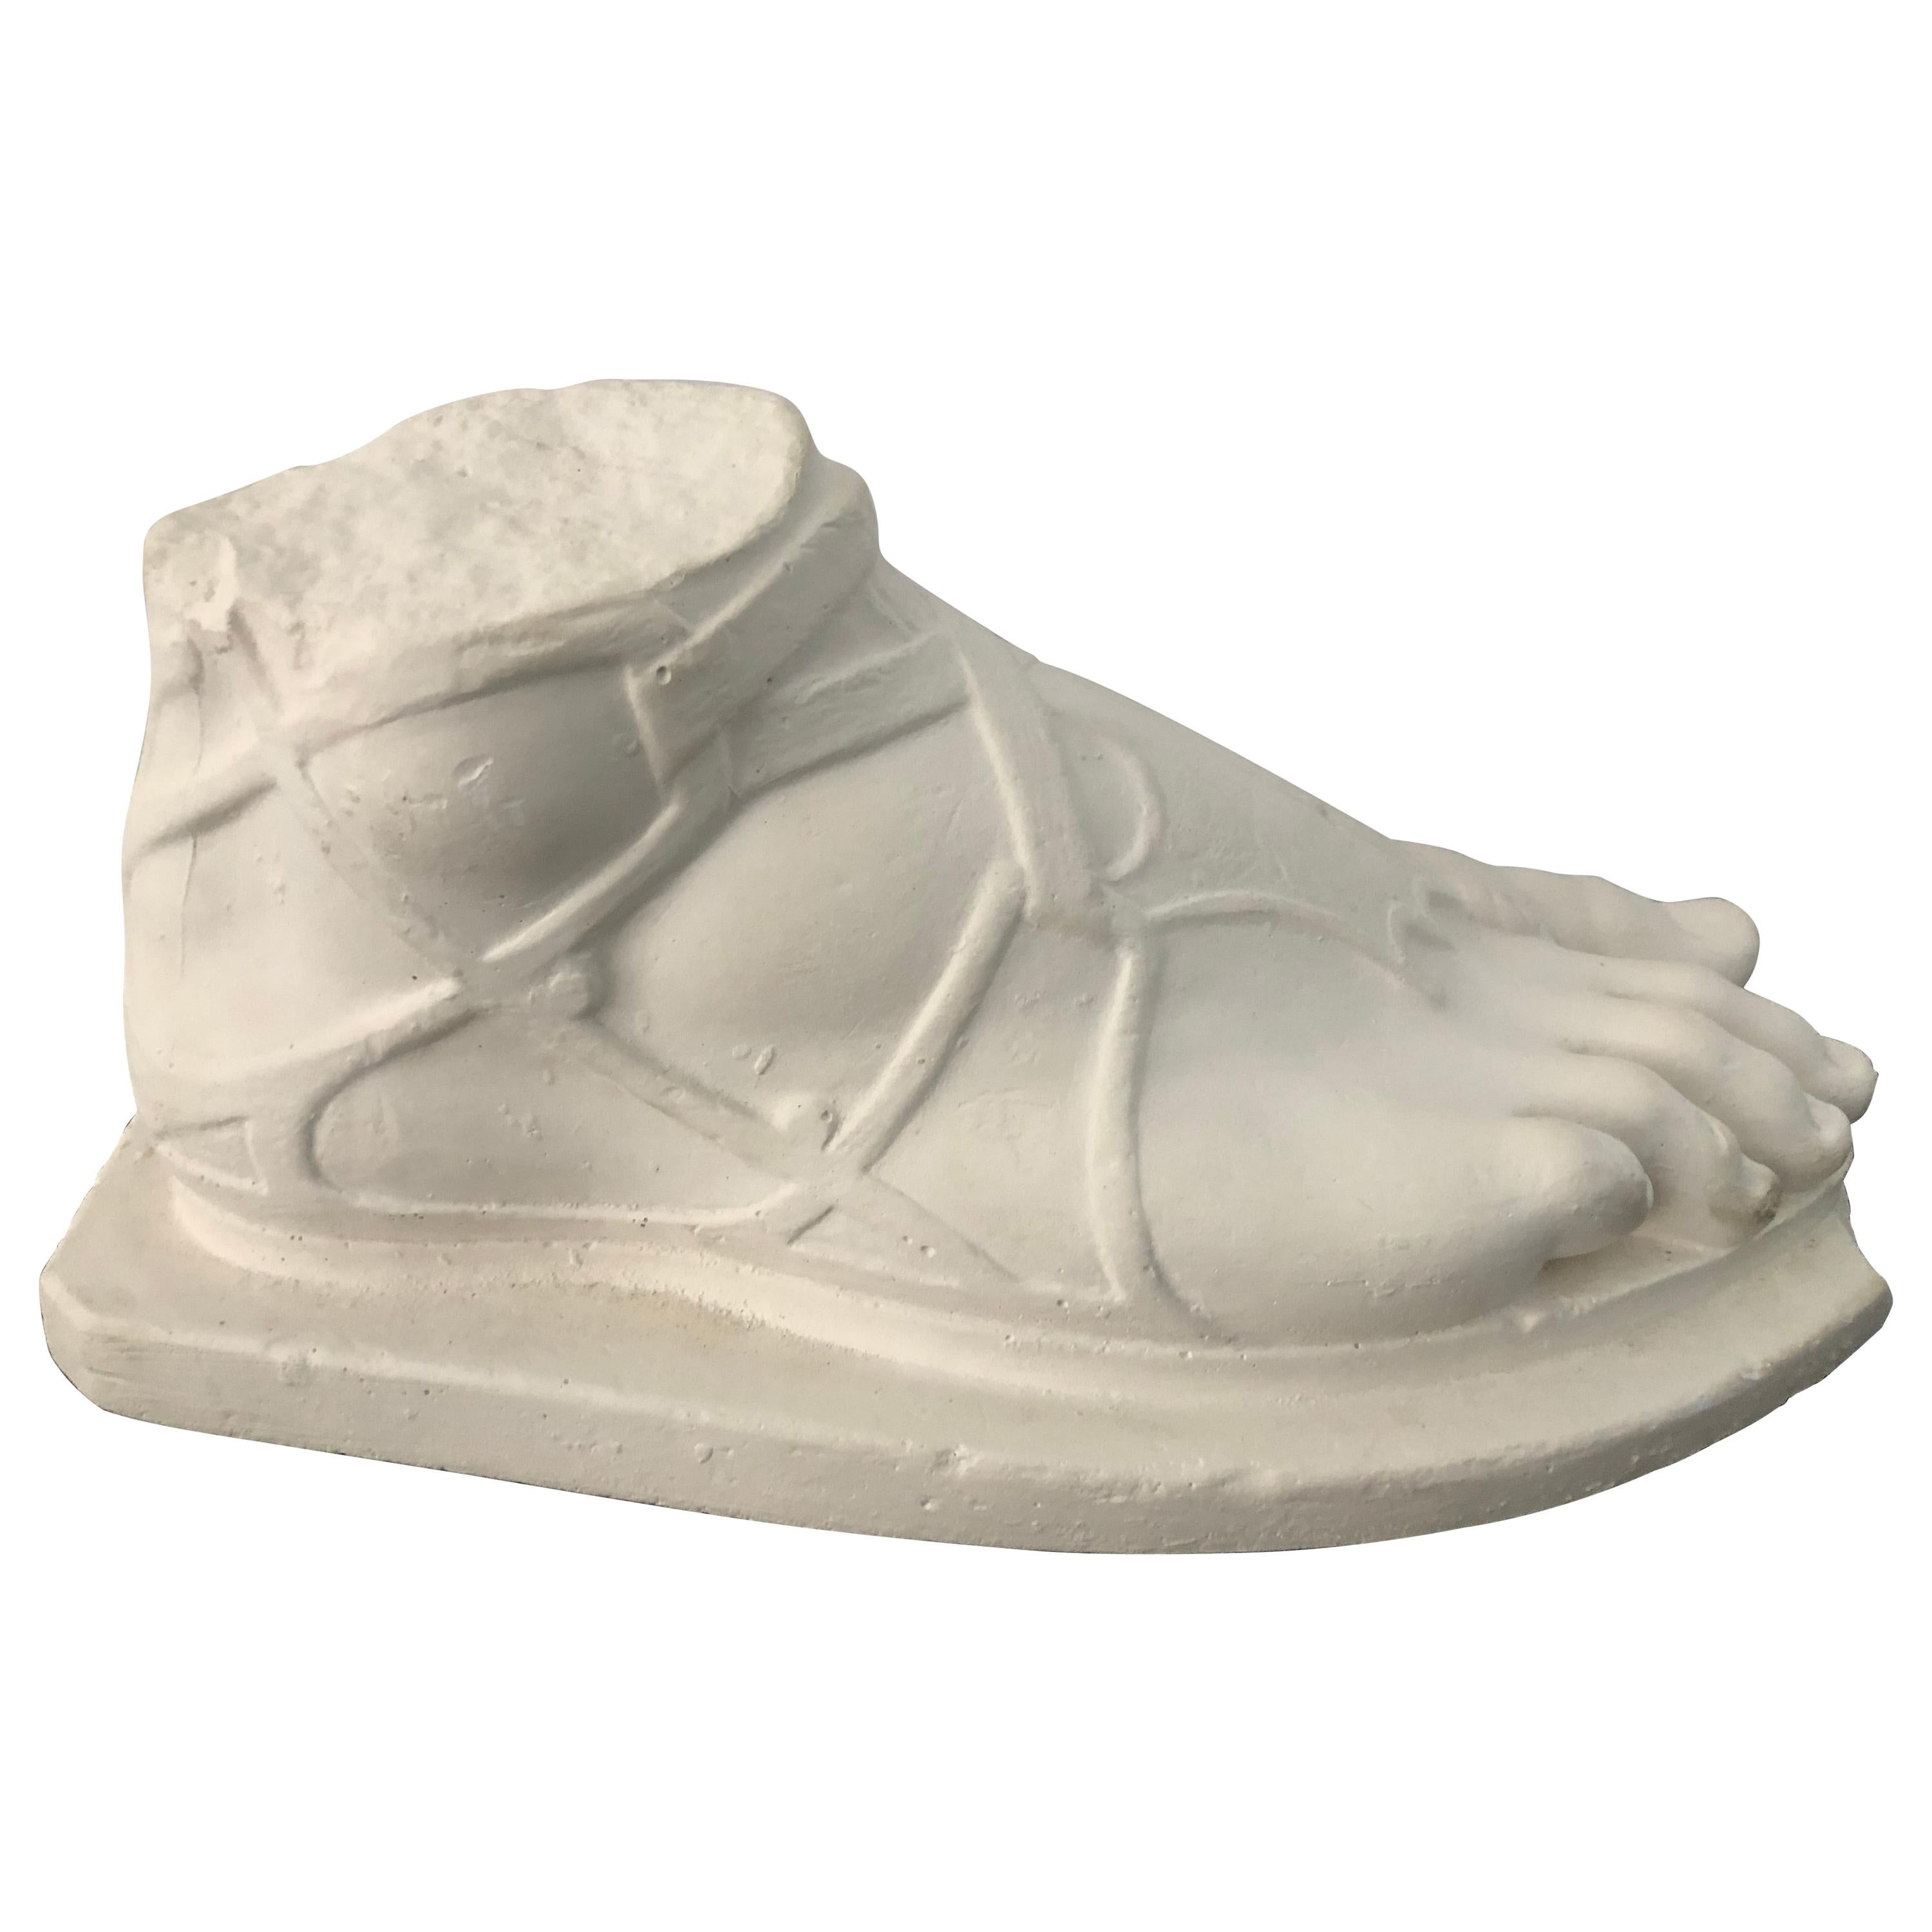 Striking Plaster Sculpture of Hermes Foot